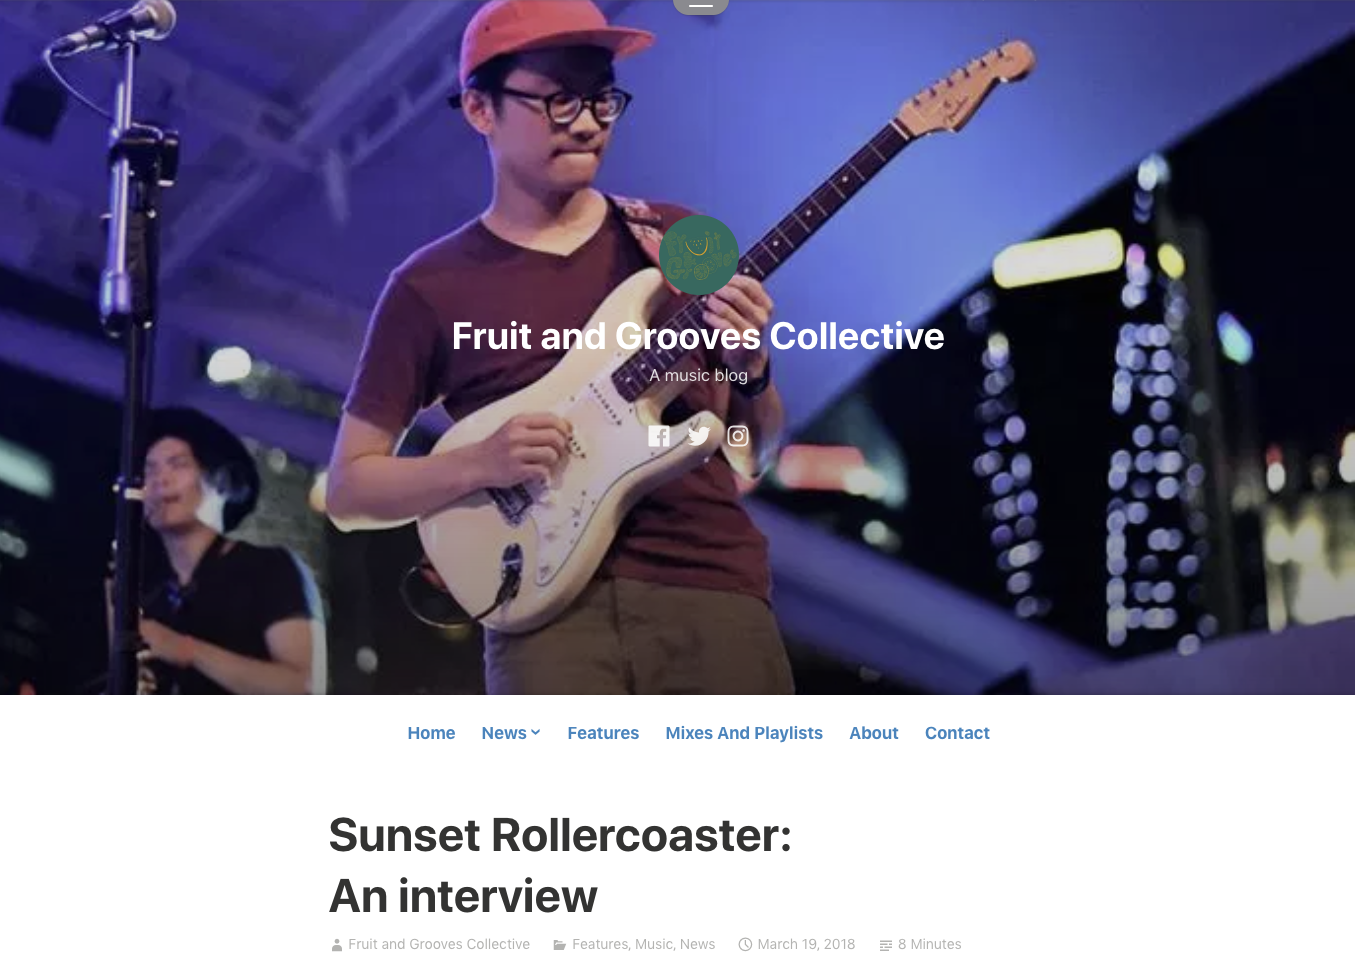 https://fruitandgroovescollective.wordpress.com/2018/03/19/sunset-rollercoaster-an-interview/